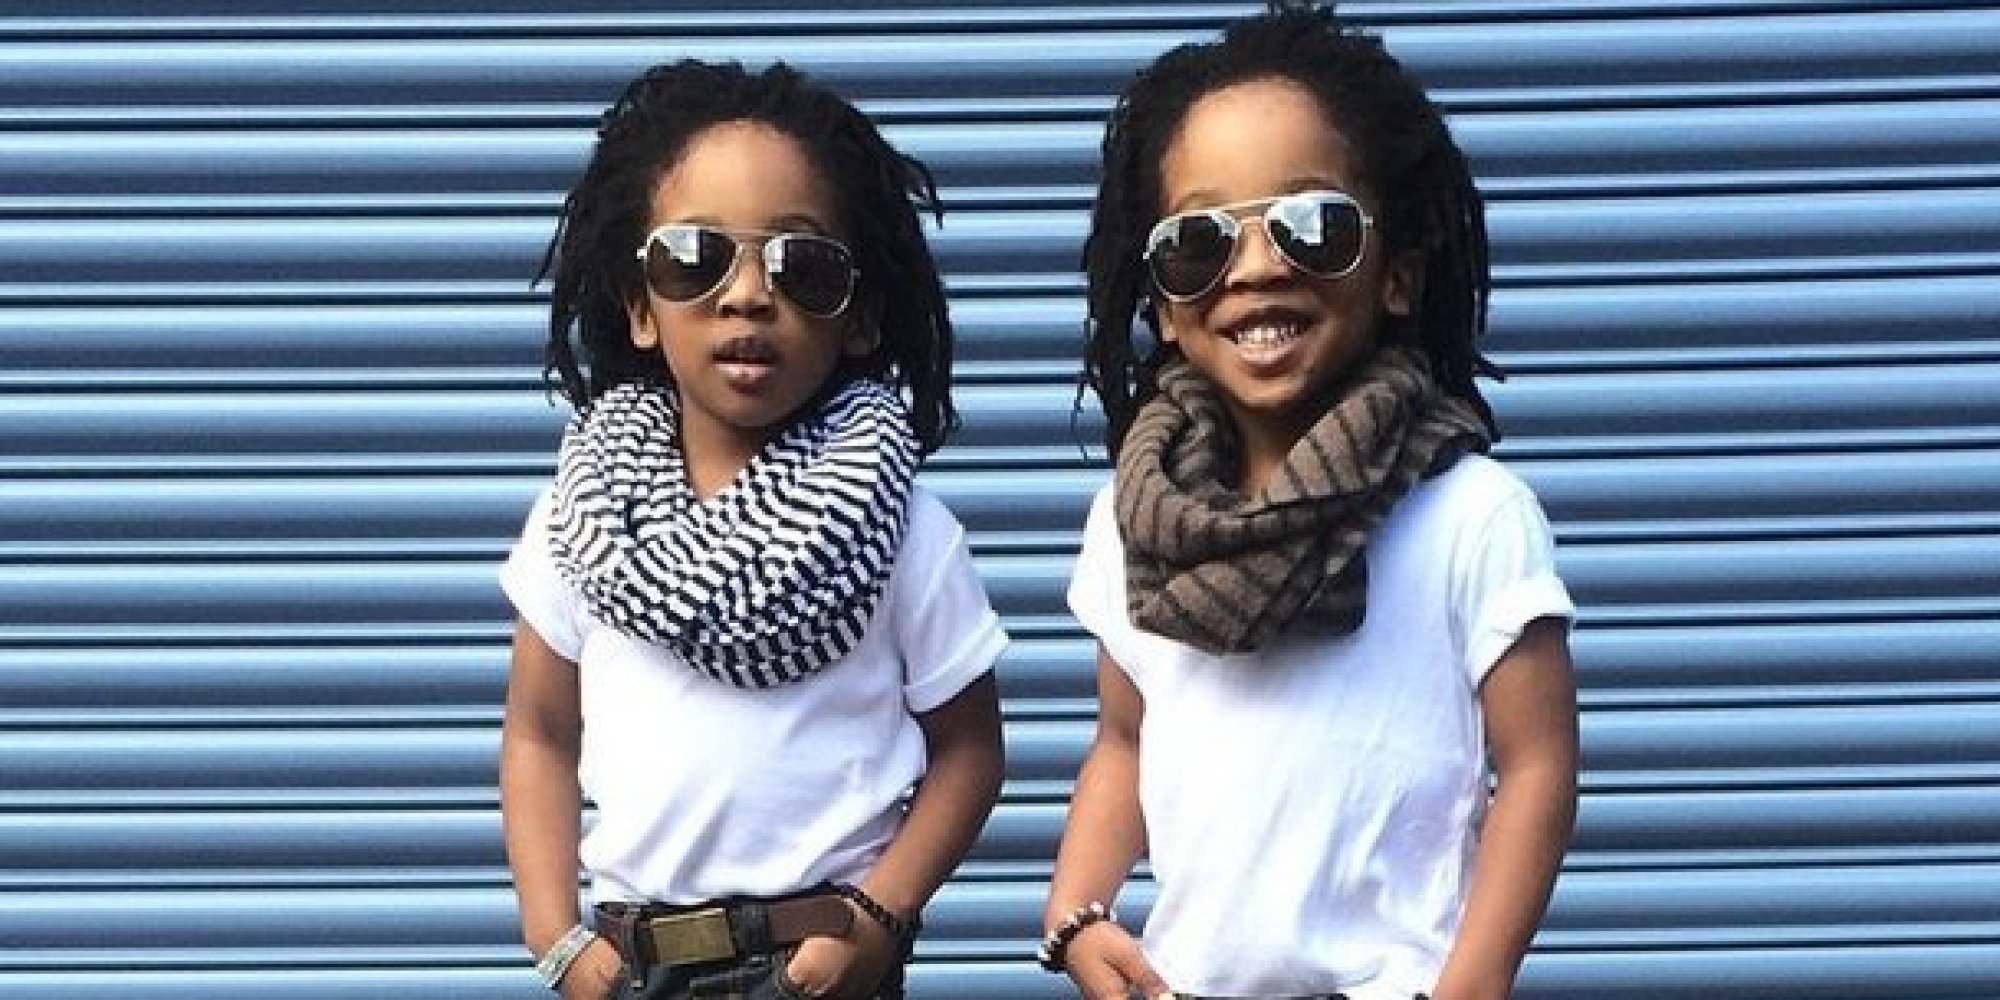 These Stylish Twins Have Way More Swagger Than You Huffpost